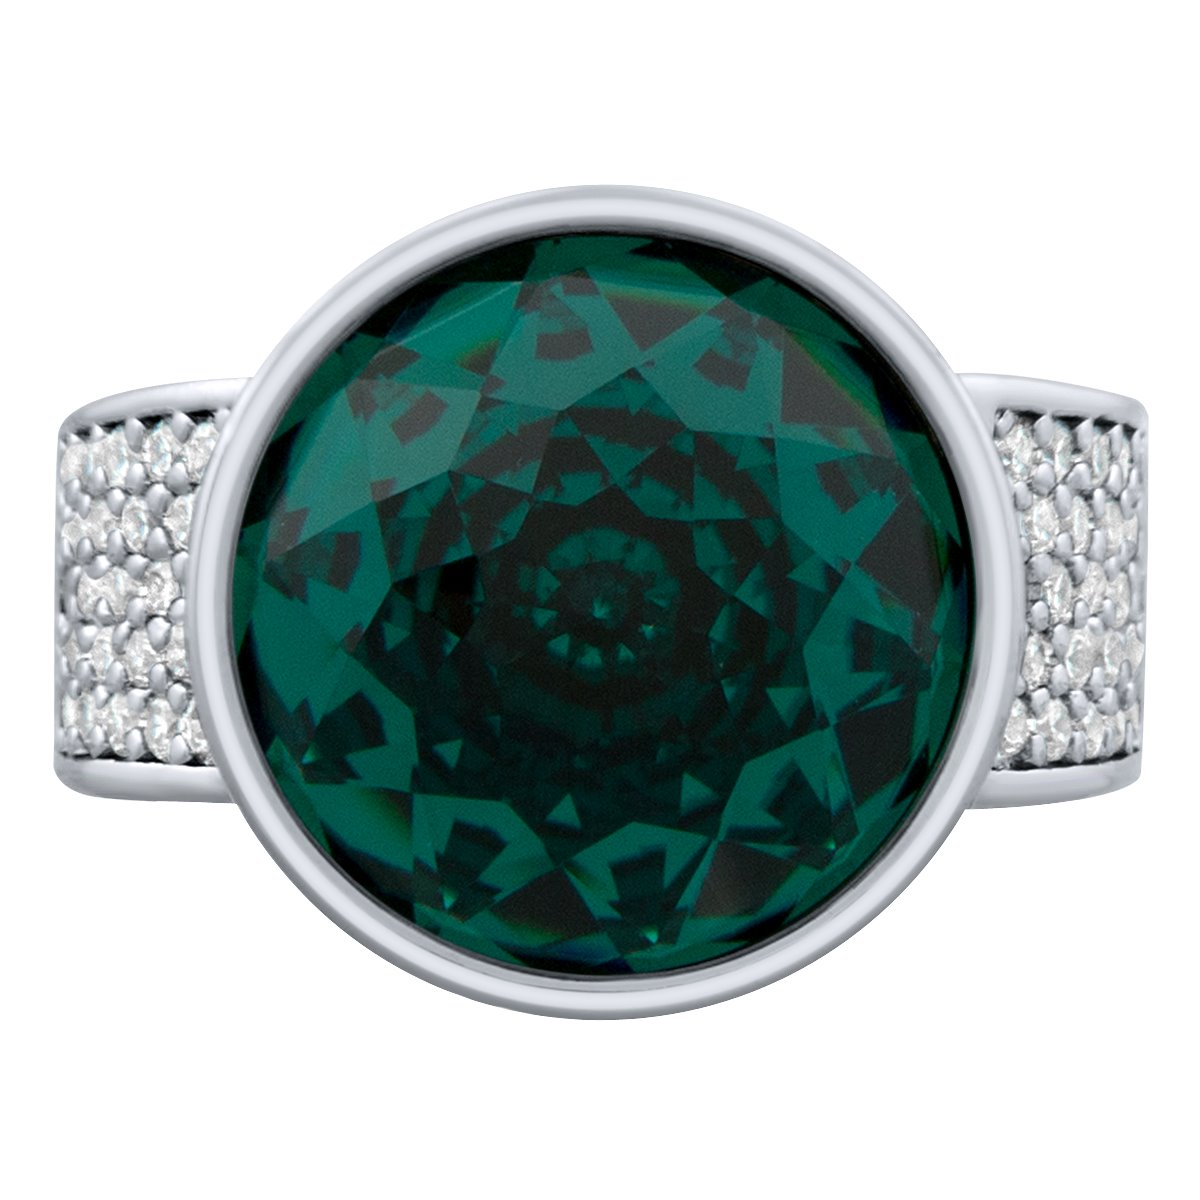 Elysees Ring Silver Emerald JOY OF SPARKLE FOREVER CRYSTALS